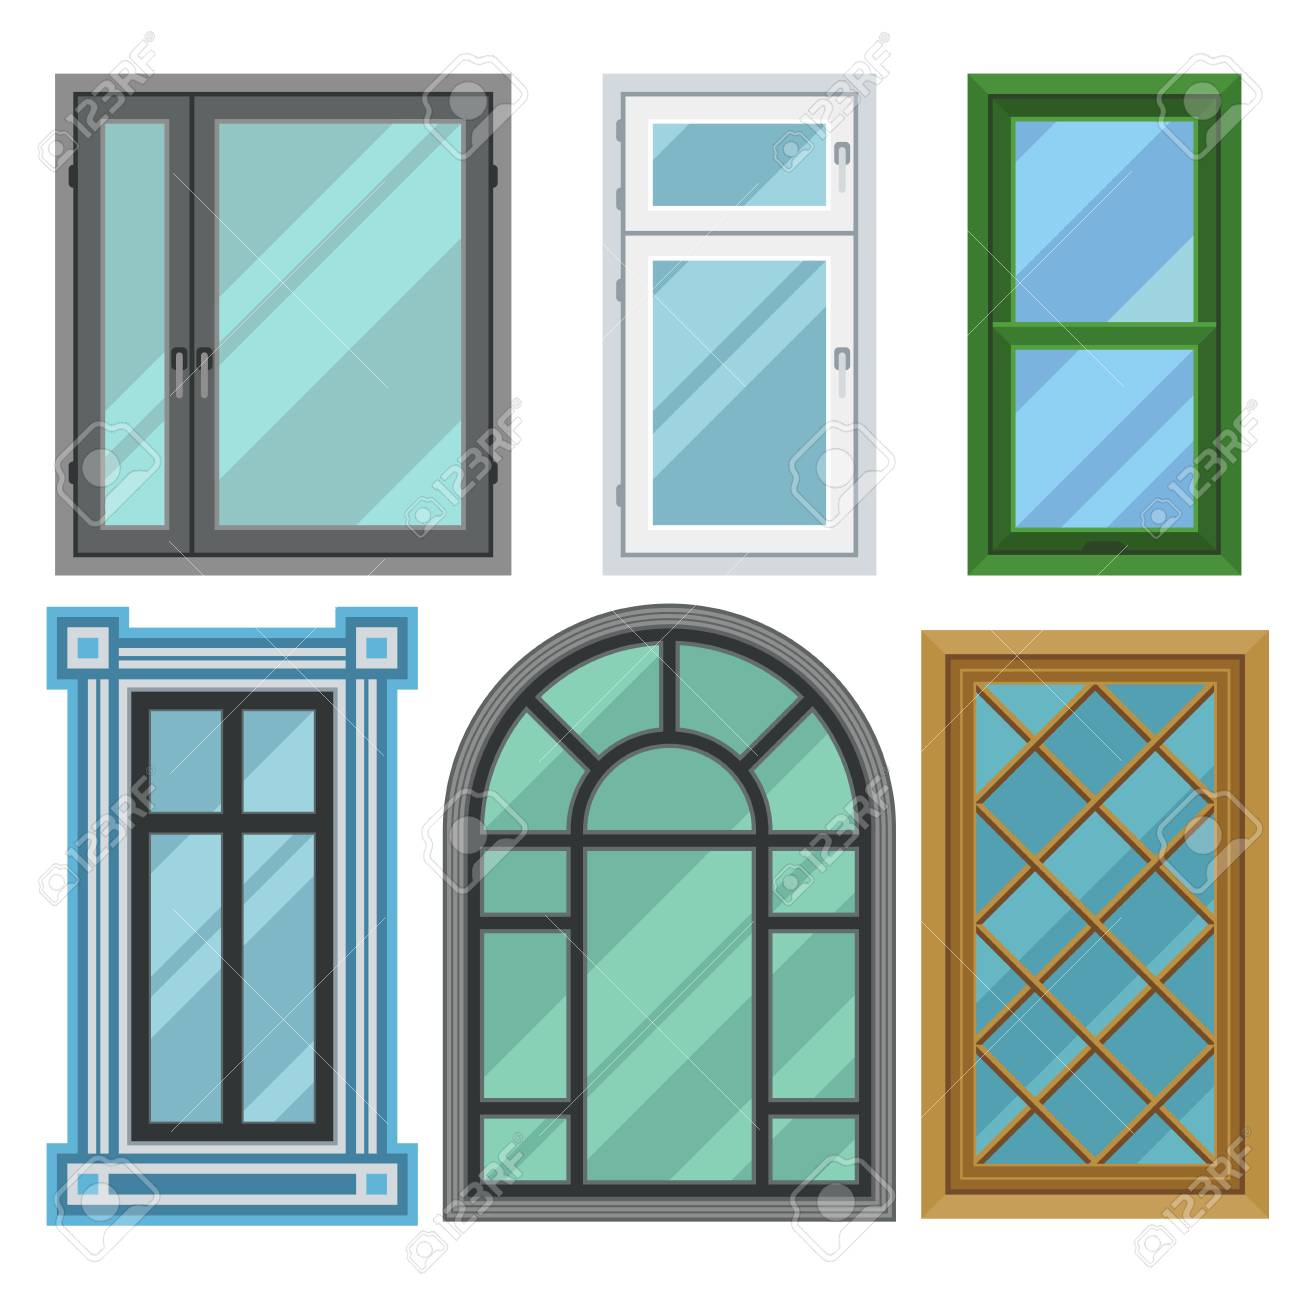 different types of frames